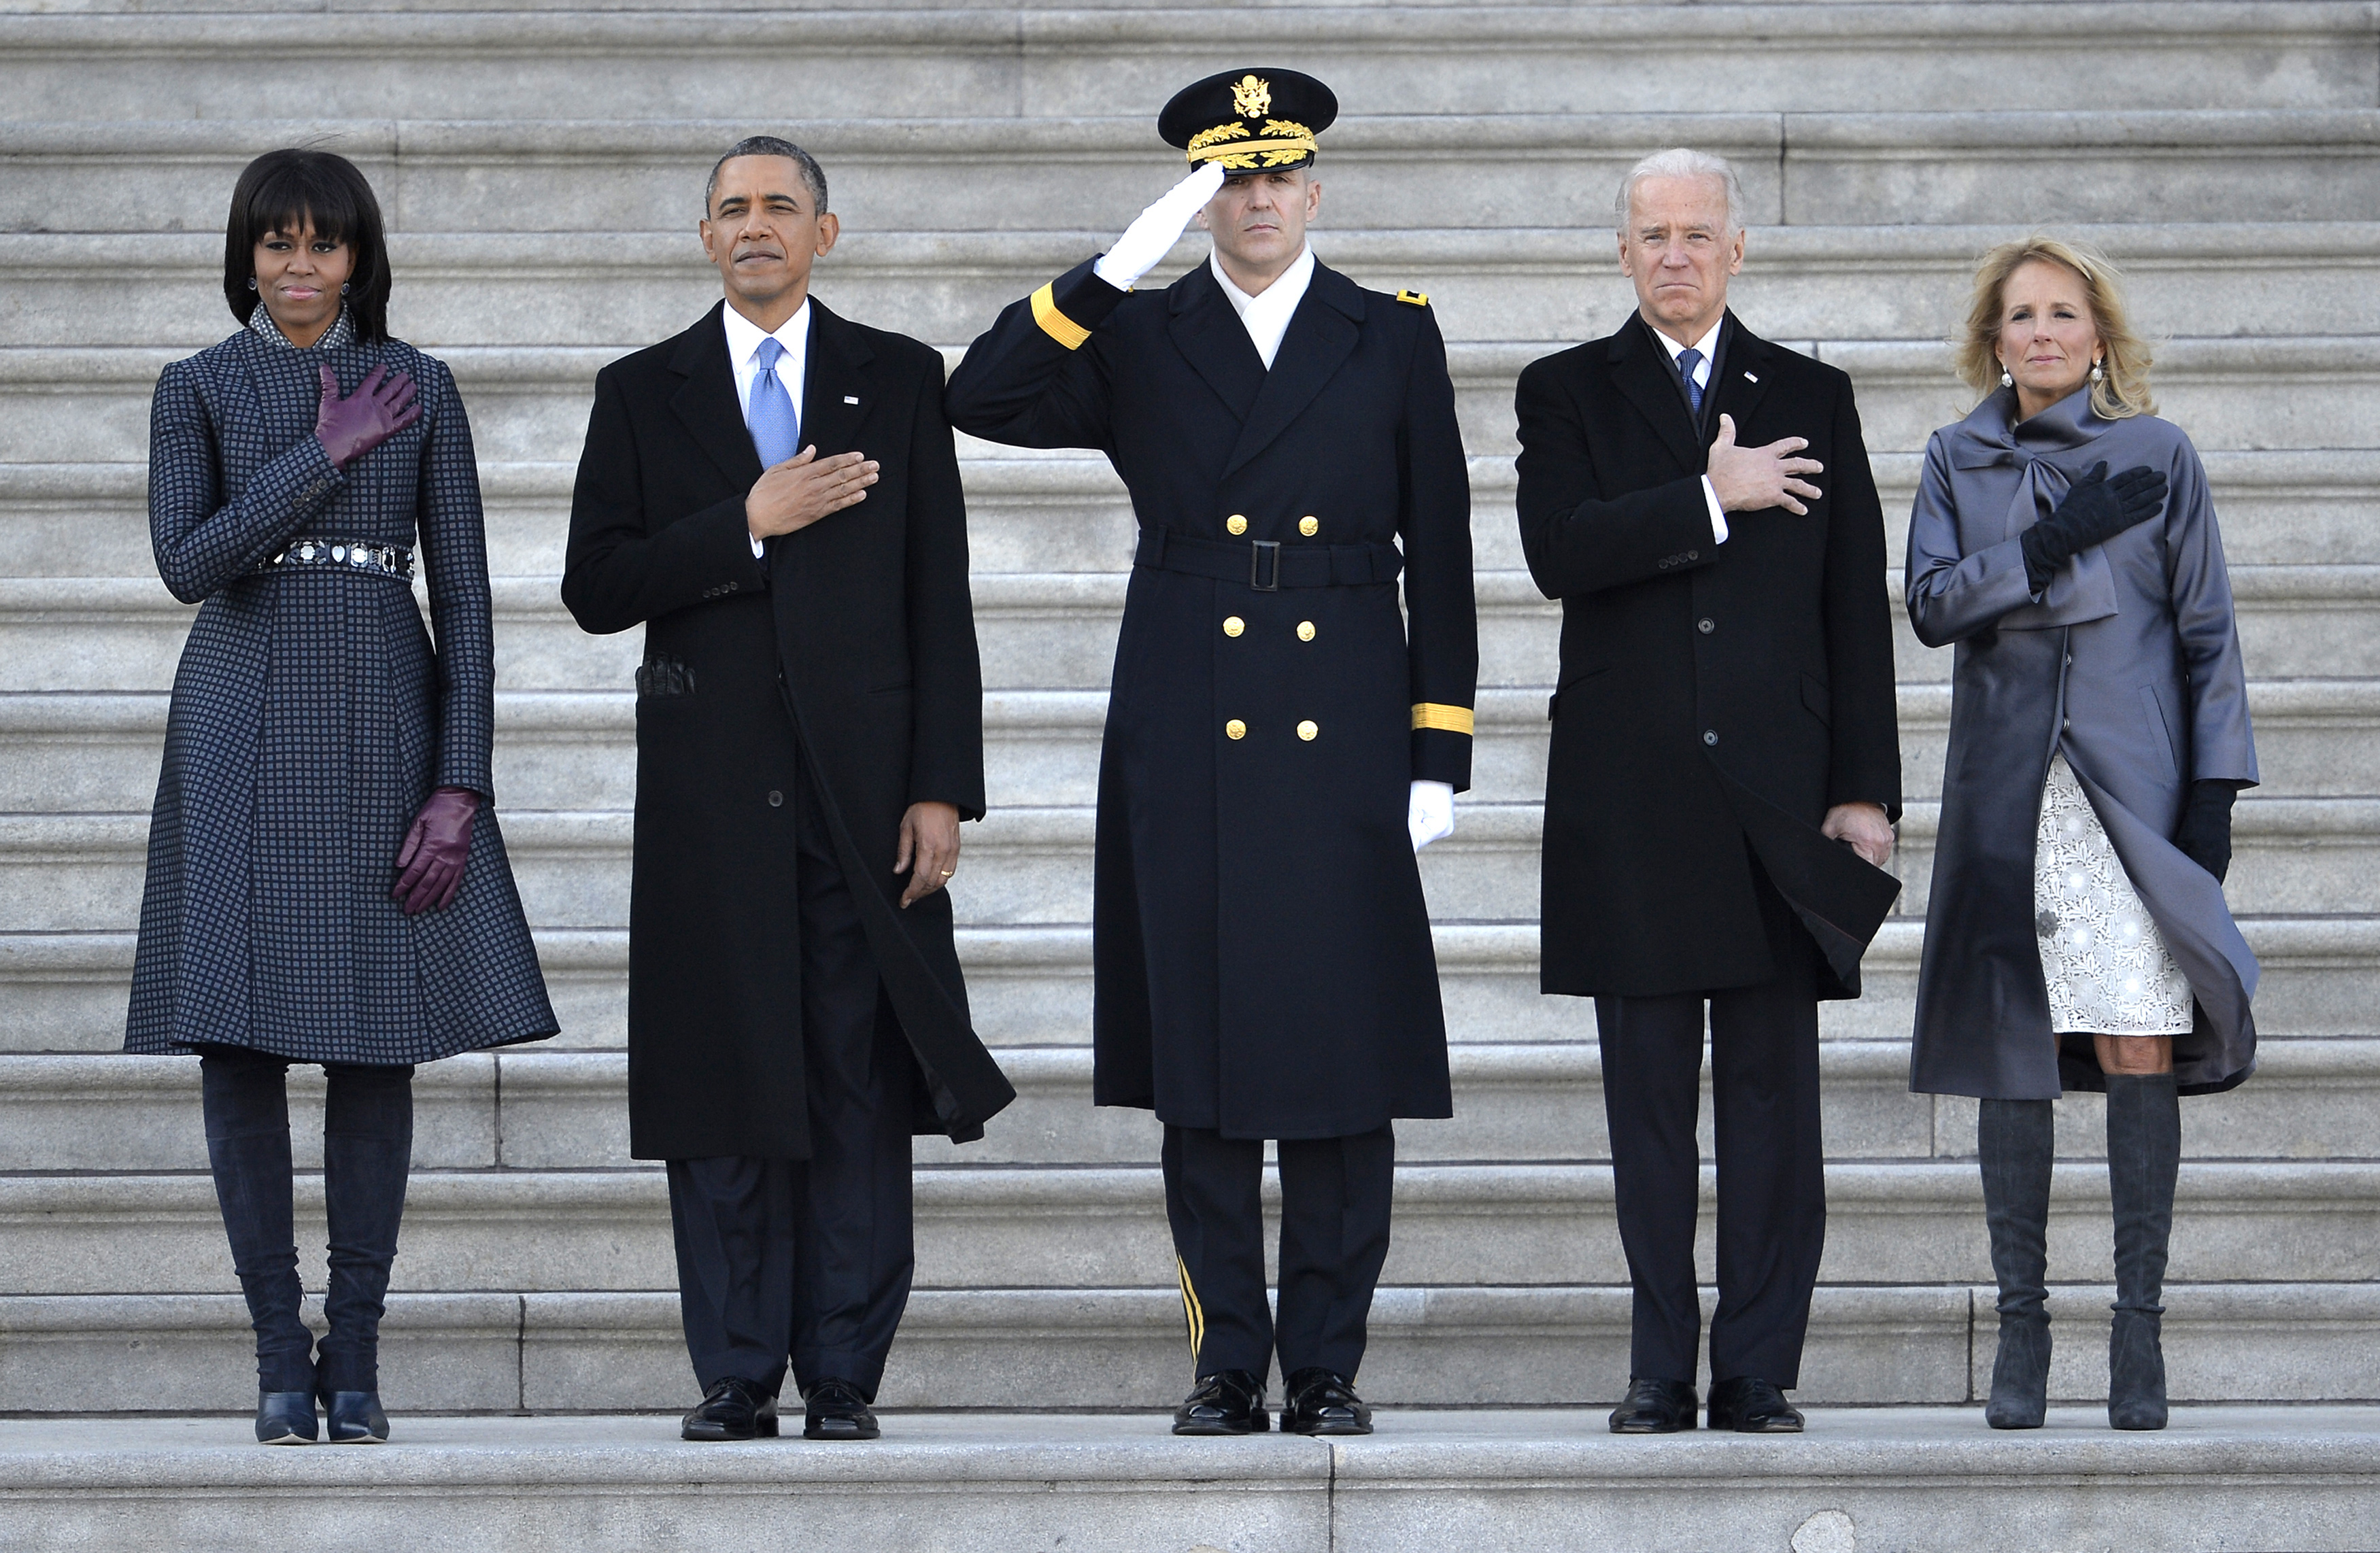 US Army Military District of Washington Major General Michael L. Linnington, Commander JFHQ National Capitol Region (C) is flanked by US President Barack Obama and First Lady Michelle Obama (L side) and Vice President Joe Biden and his wife Jill Biden as they review troops during inauguration ceremonies at the US Capitol, Washington DC, January 21, 2013.          REUTERS/Mike Theiler (UNITED STATES - Tags: POLITICS) - RTR3CRJJ